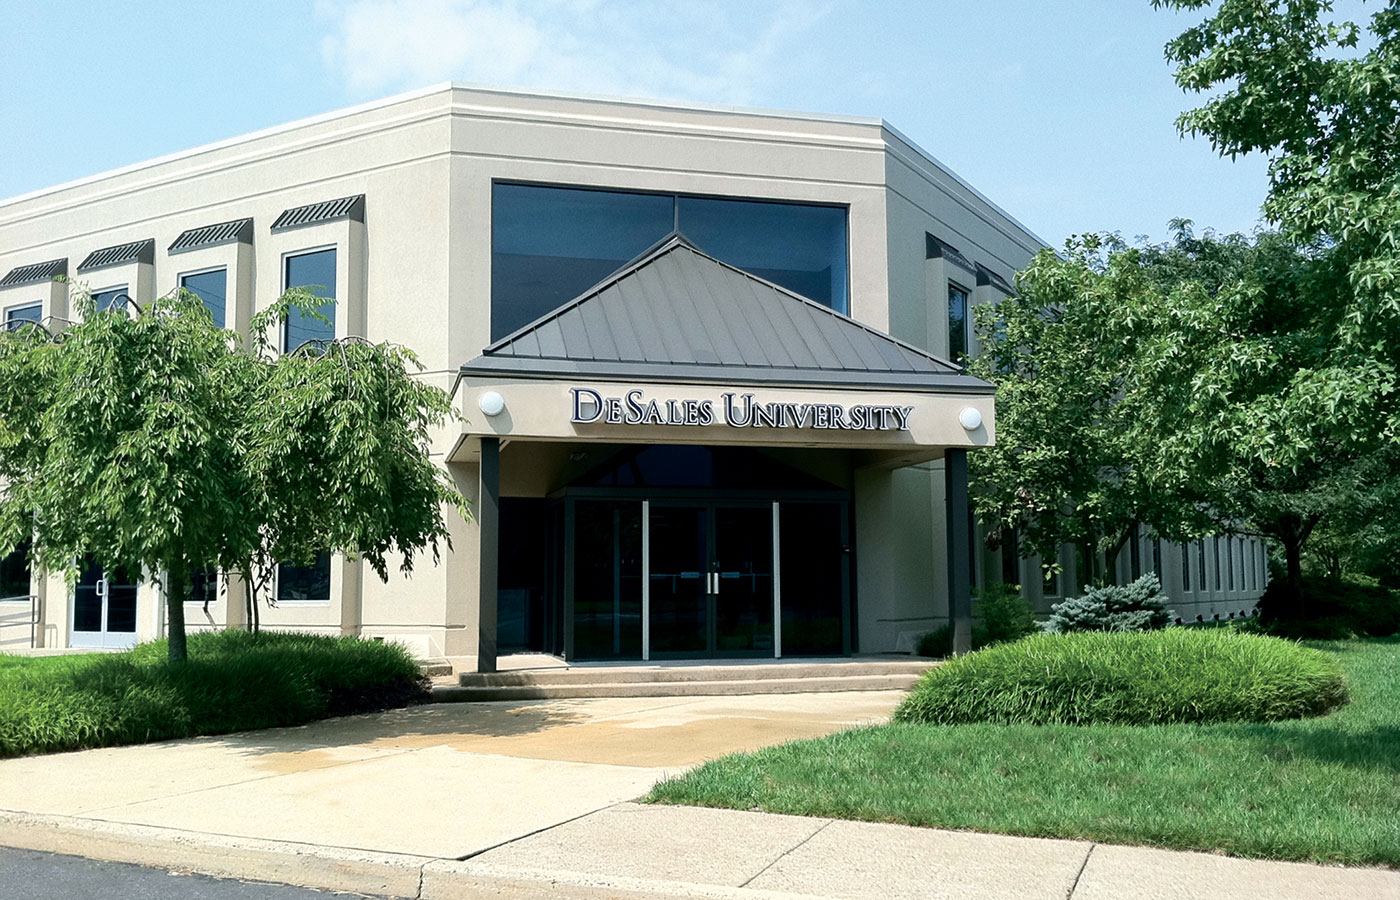 DeSales University at Lansdale